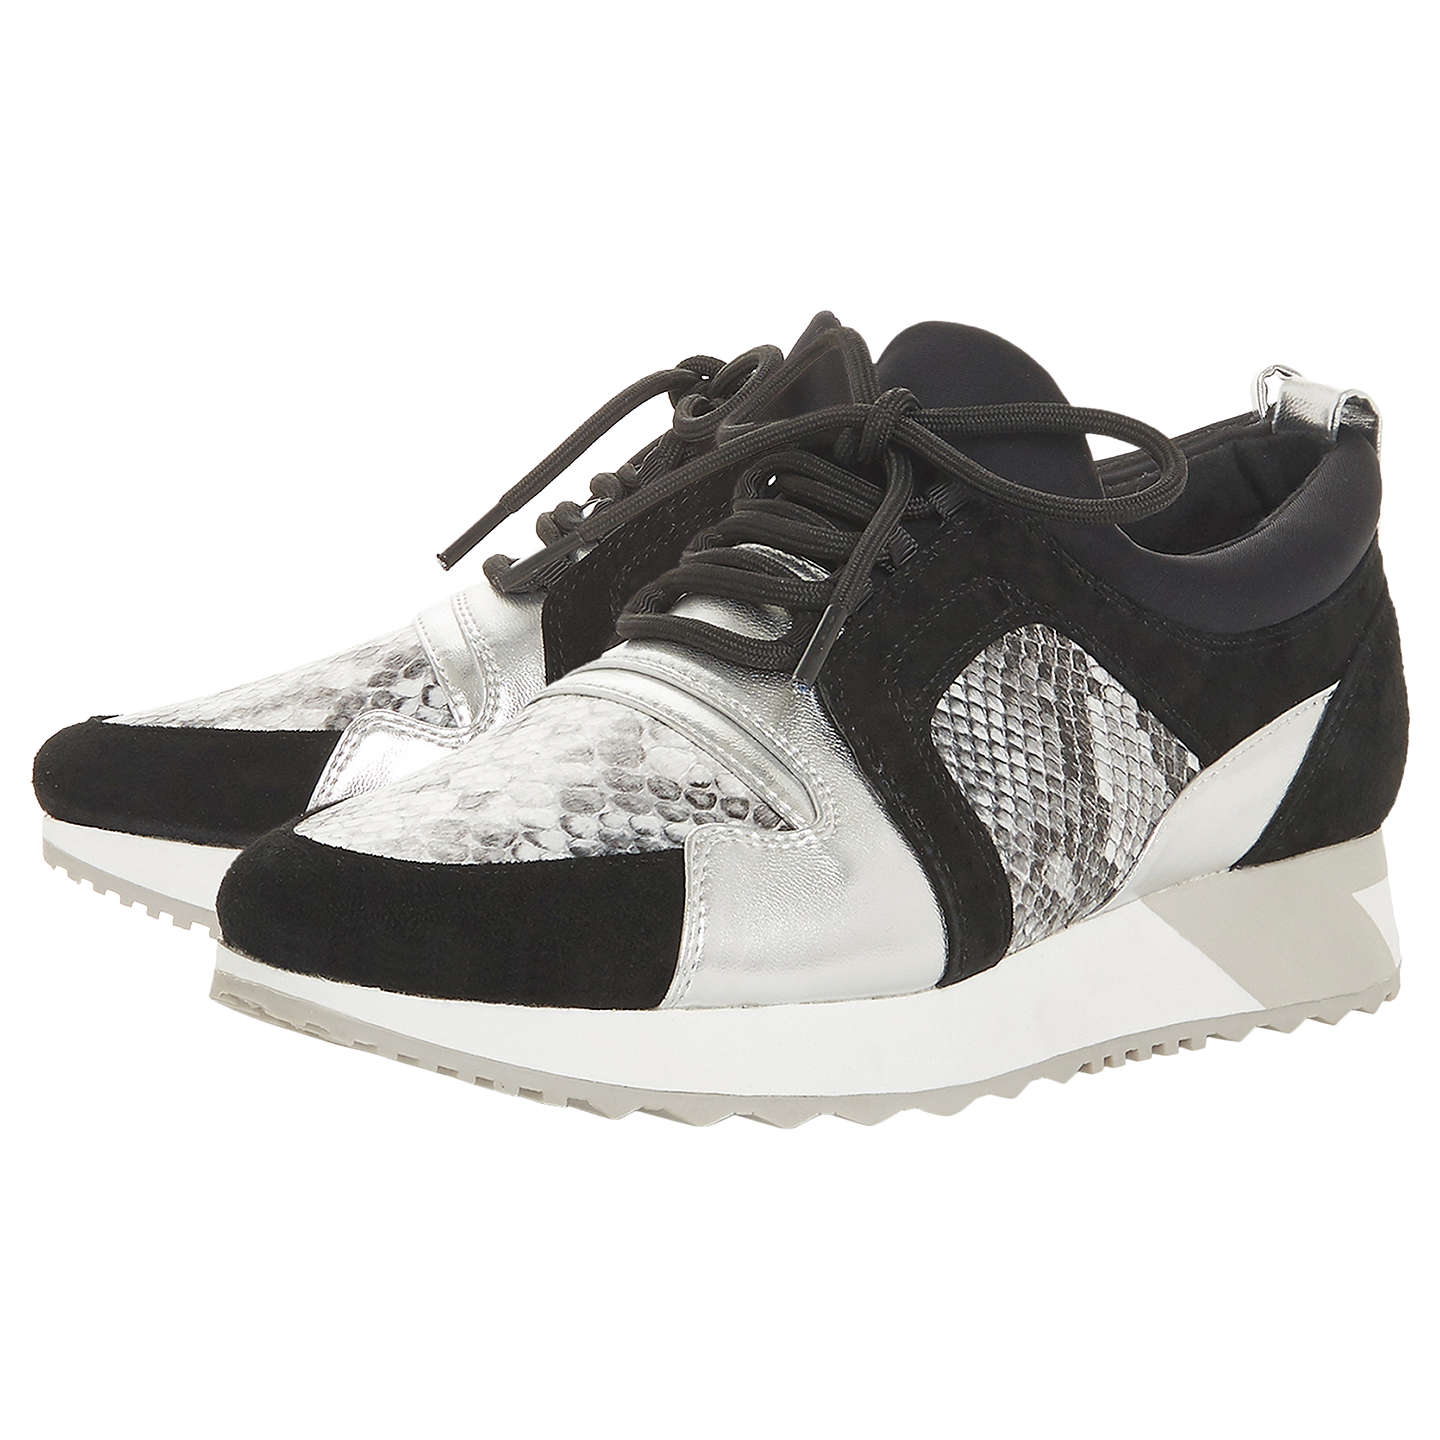 Dune Eavie Lace Up Trainers, Pewter